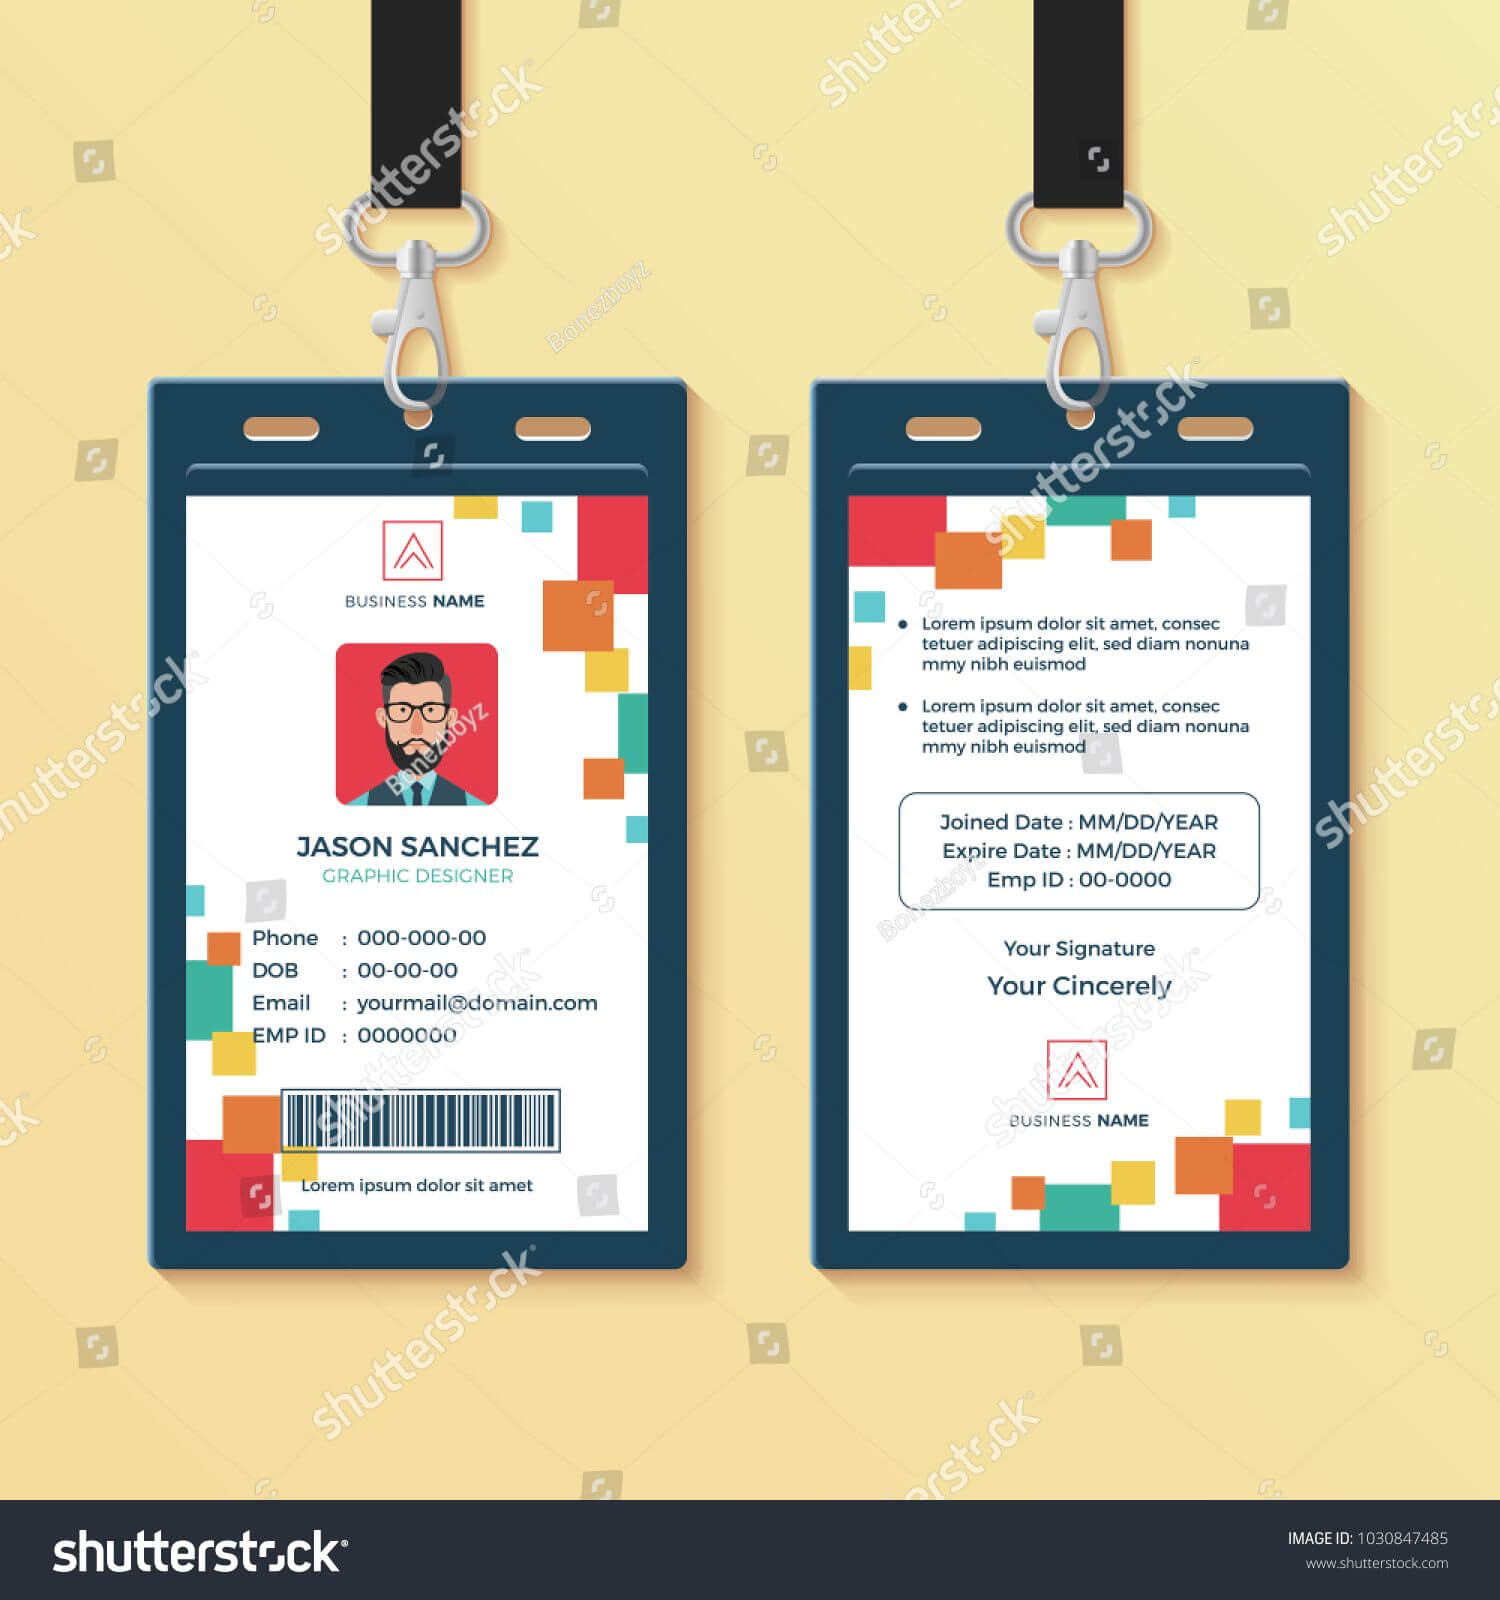 Creative Id Card Template, Perfect For Any Types Of Agency In Media Id Card Templates